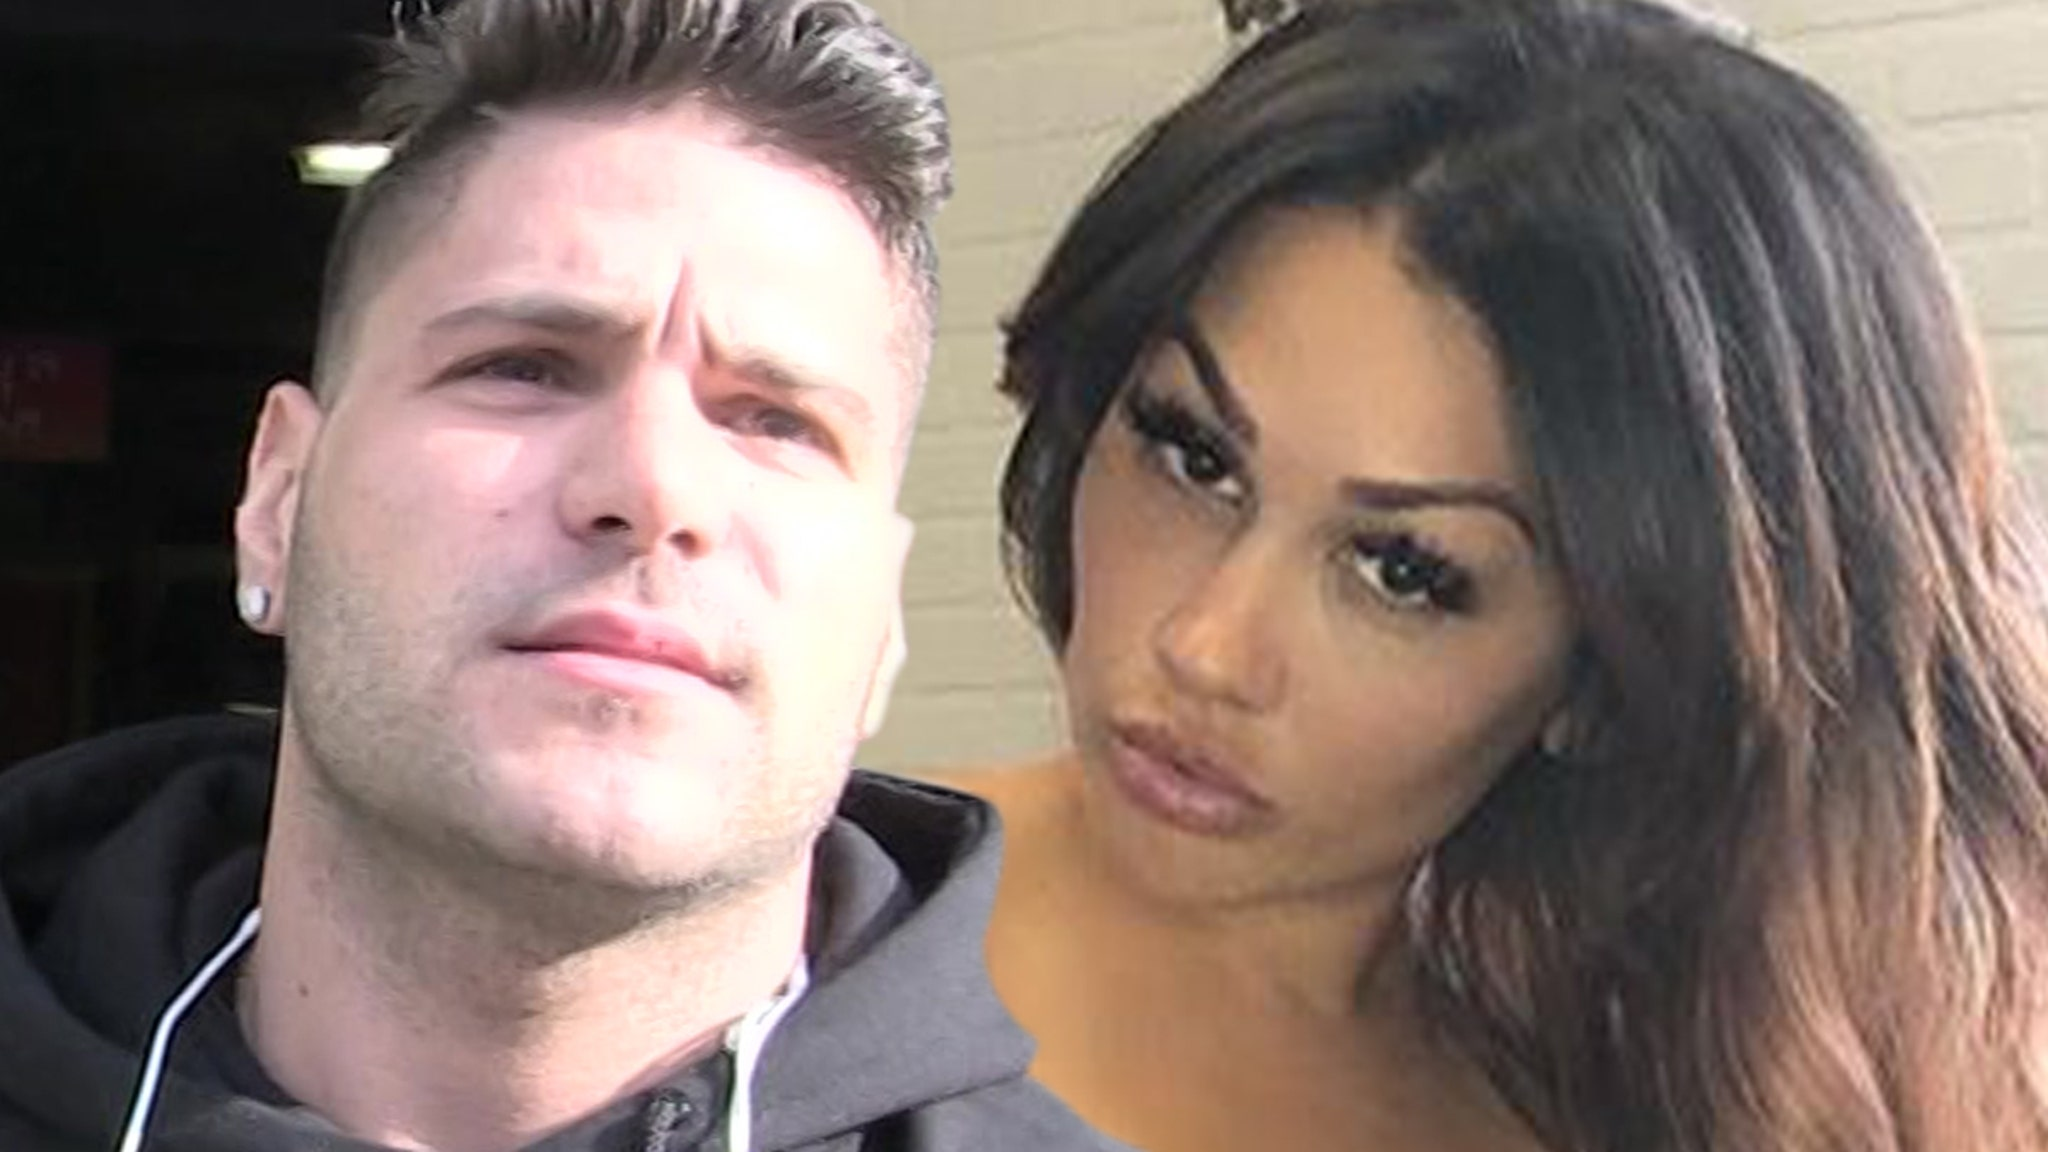 Ronnie Ortiz-Magro, Jen Harley Breaking Up For Good After Latest Fight